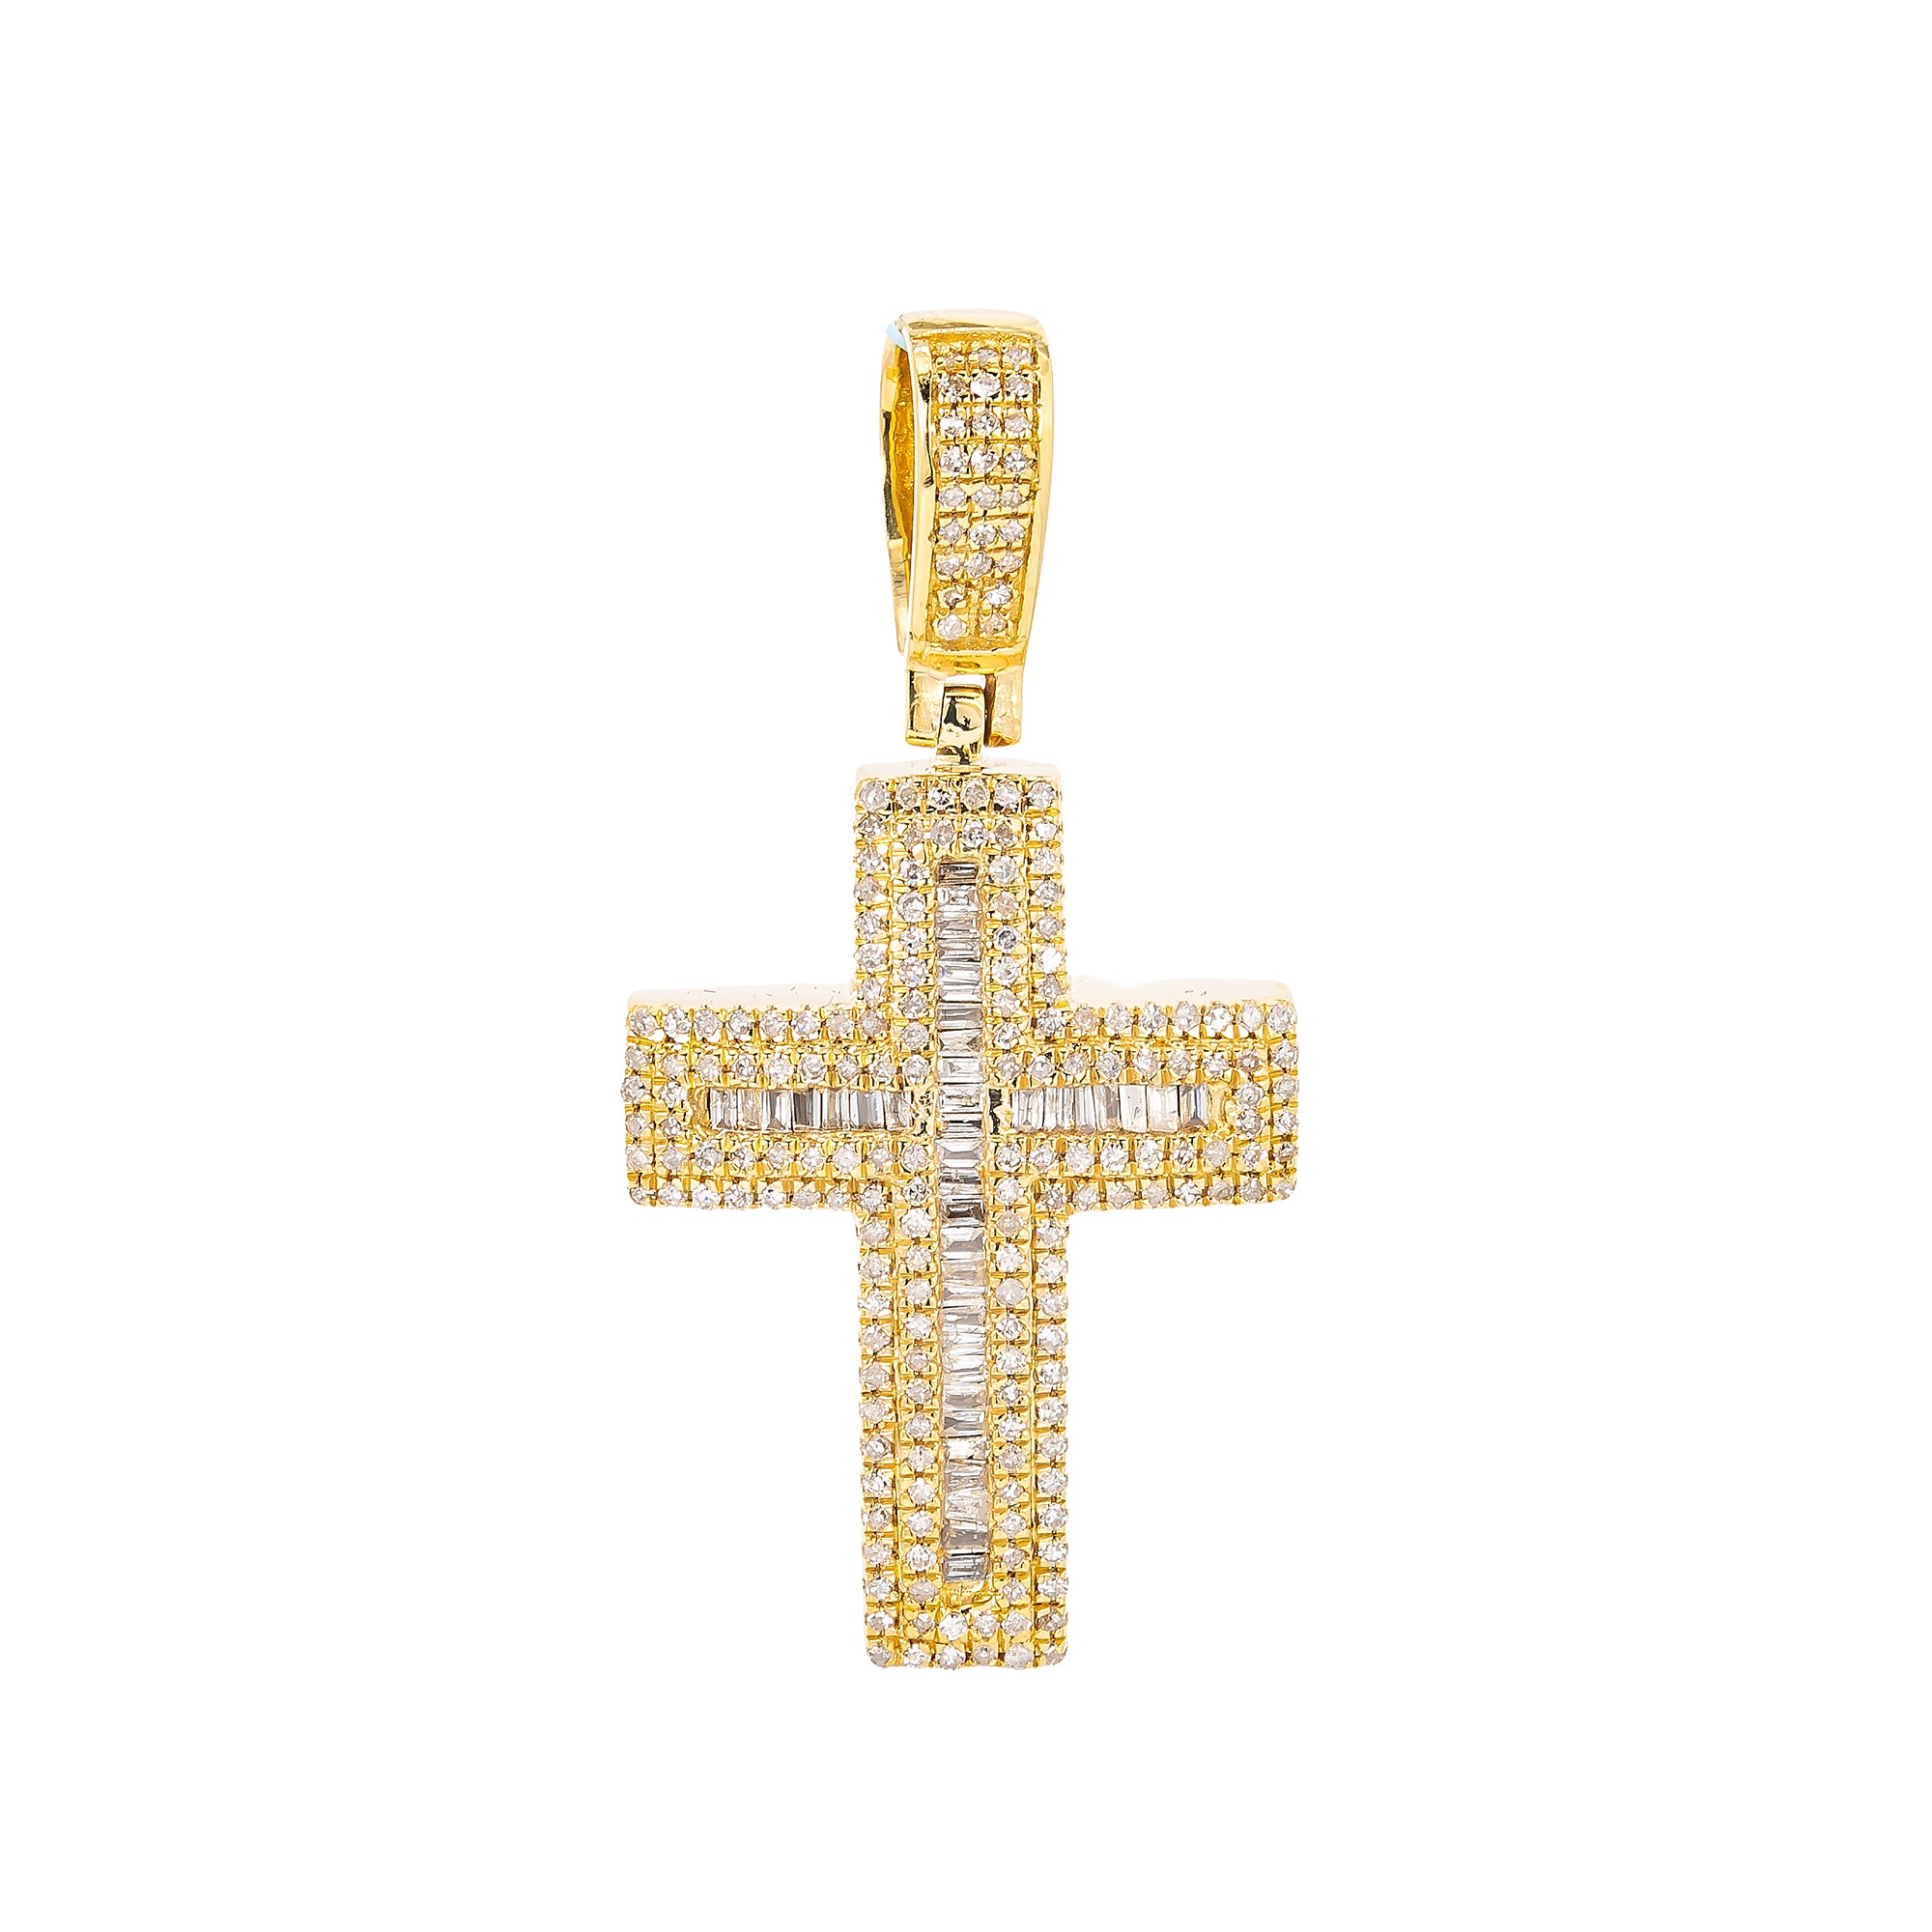 Unisex 14K Yellow Gold Cross Pendant with 0.82 CT Diamonds